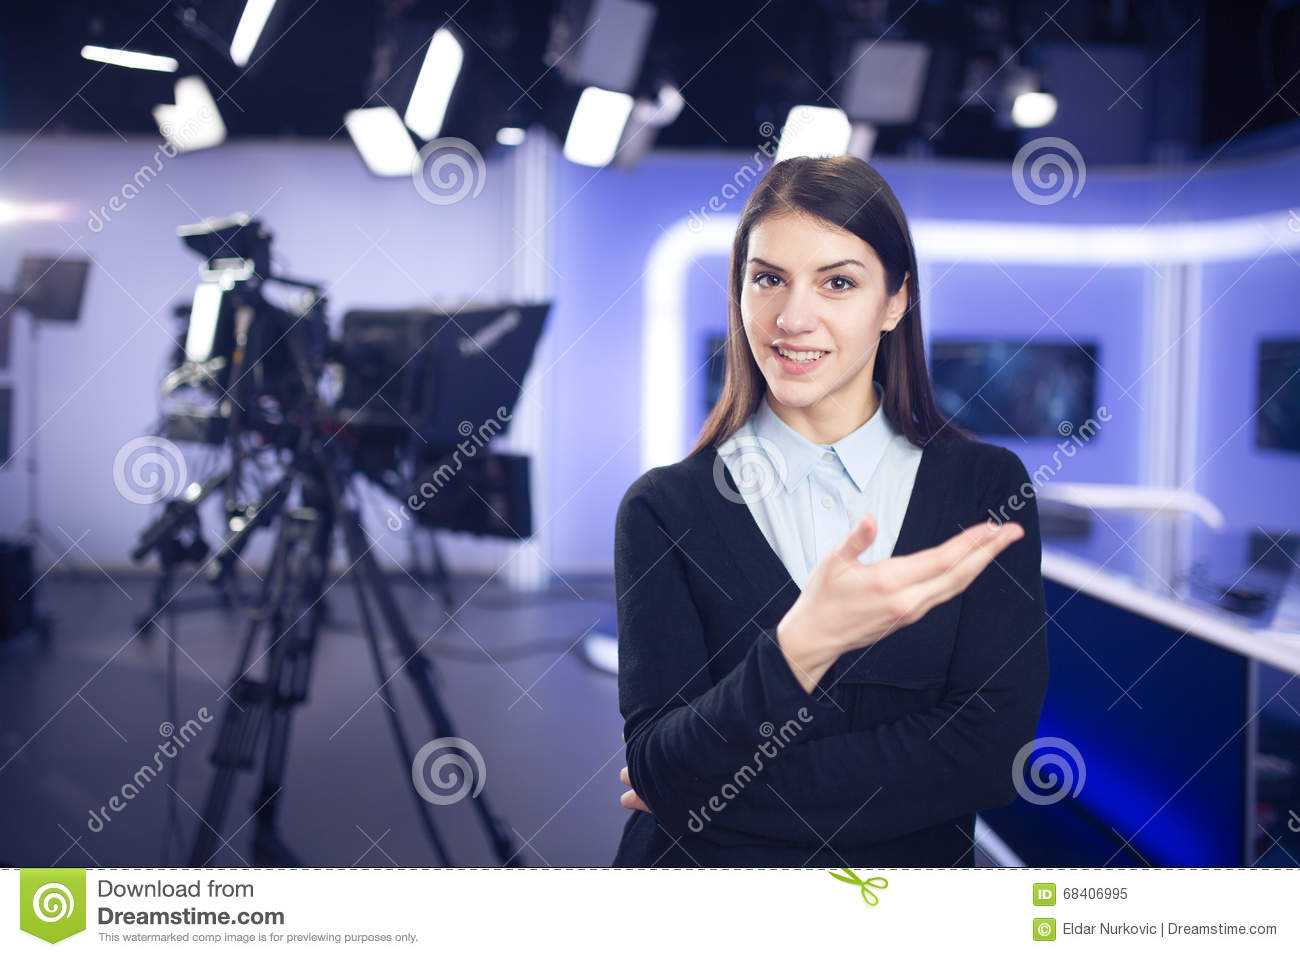 Woman journalist working as reporter, correspondent or broadcast news analystsWoman journalist working as reporter, correspondent